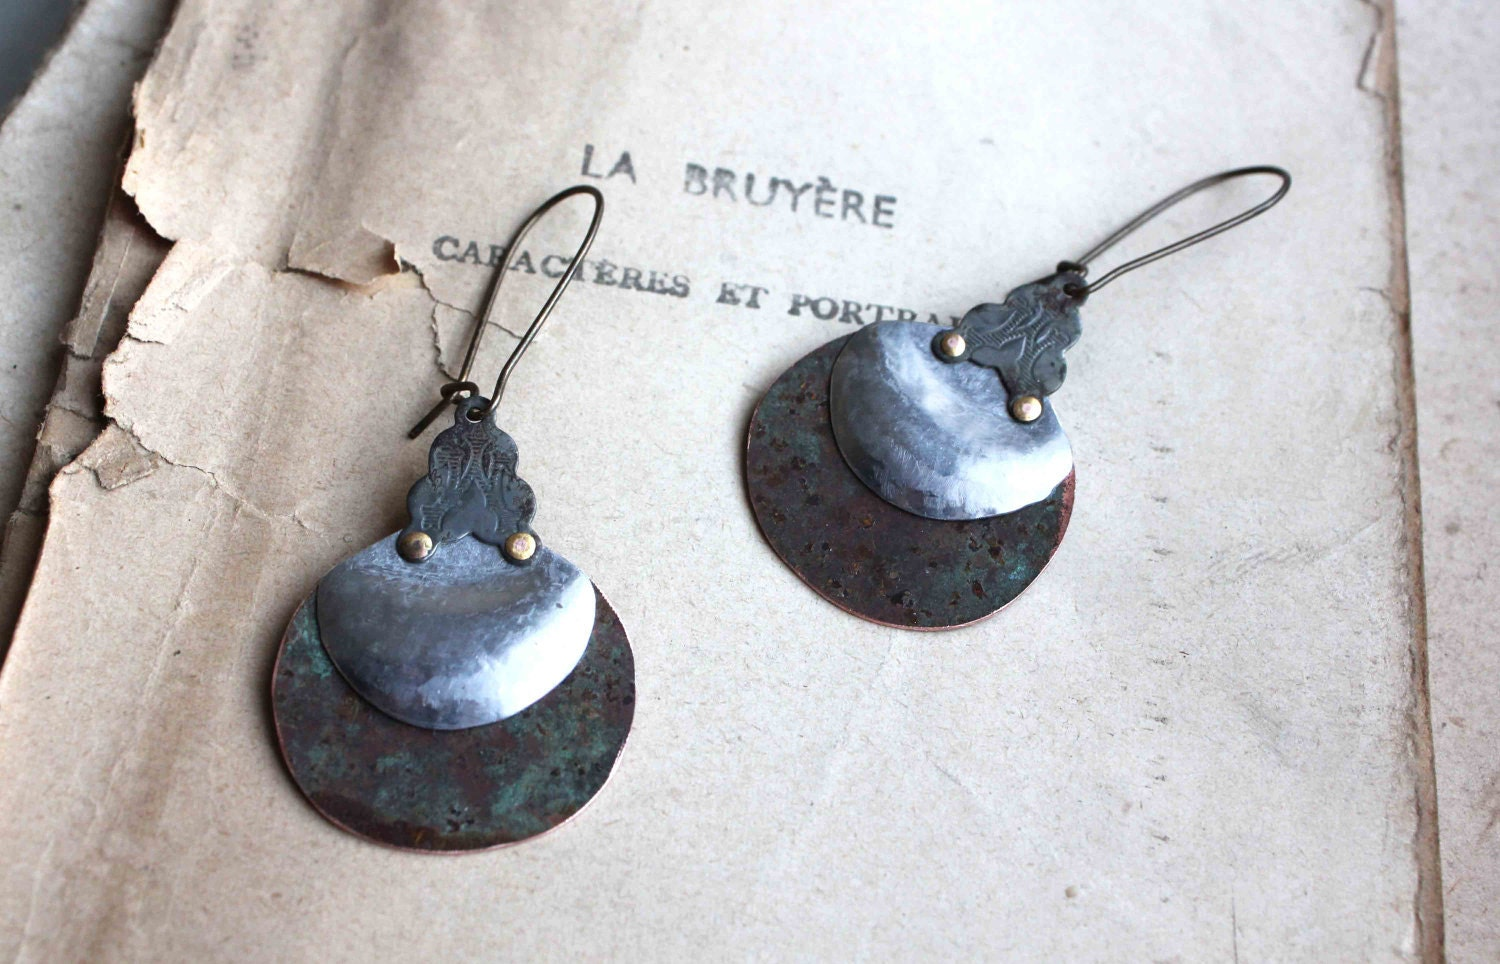 Alchemist Drops earrings verdigris silver tone rustic metallic discs